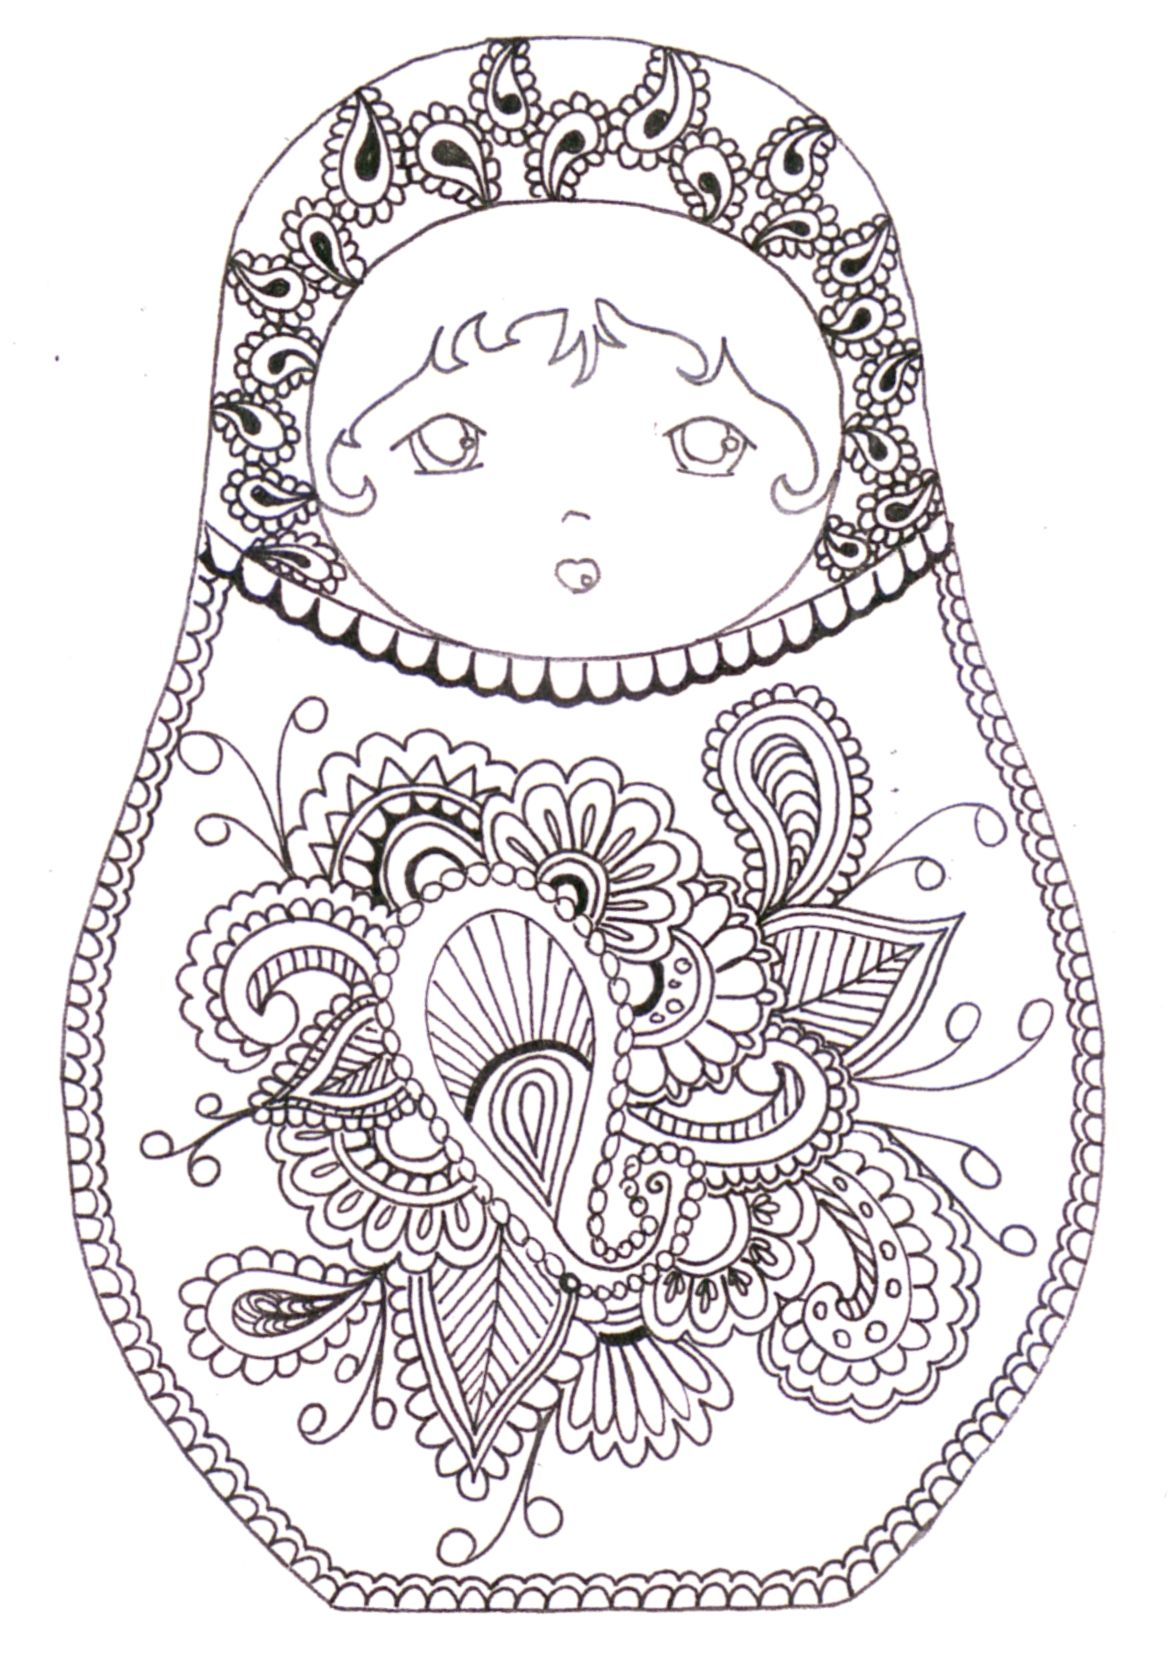 Matryoshka coloriage Cool Coloring Pages Pinterest Coloring